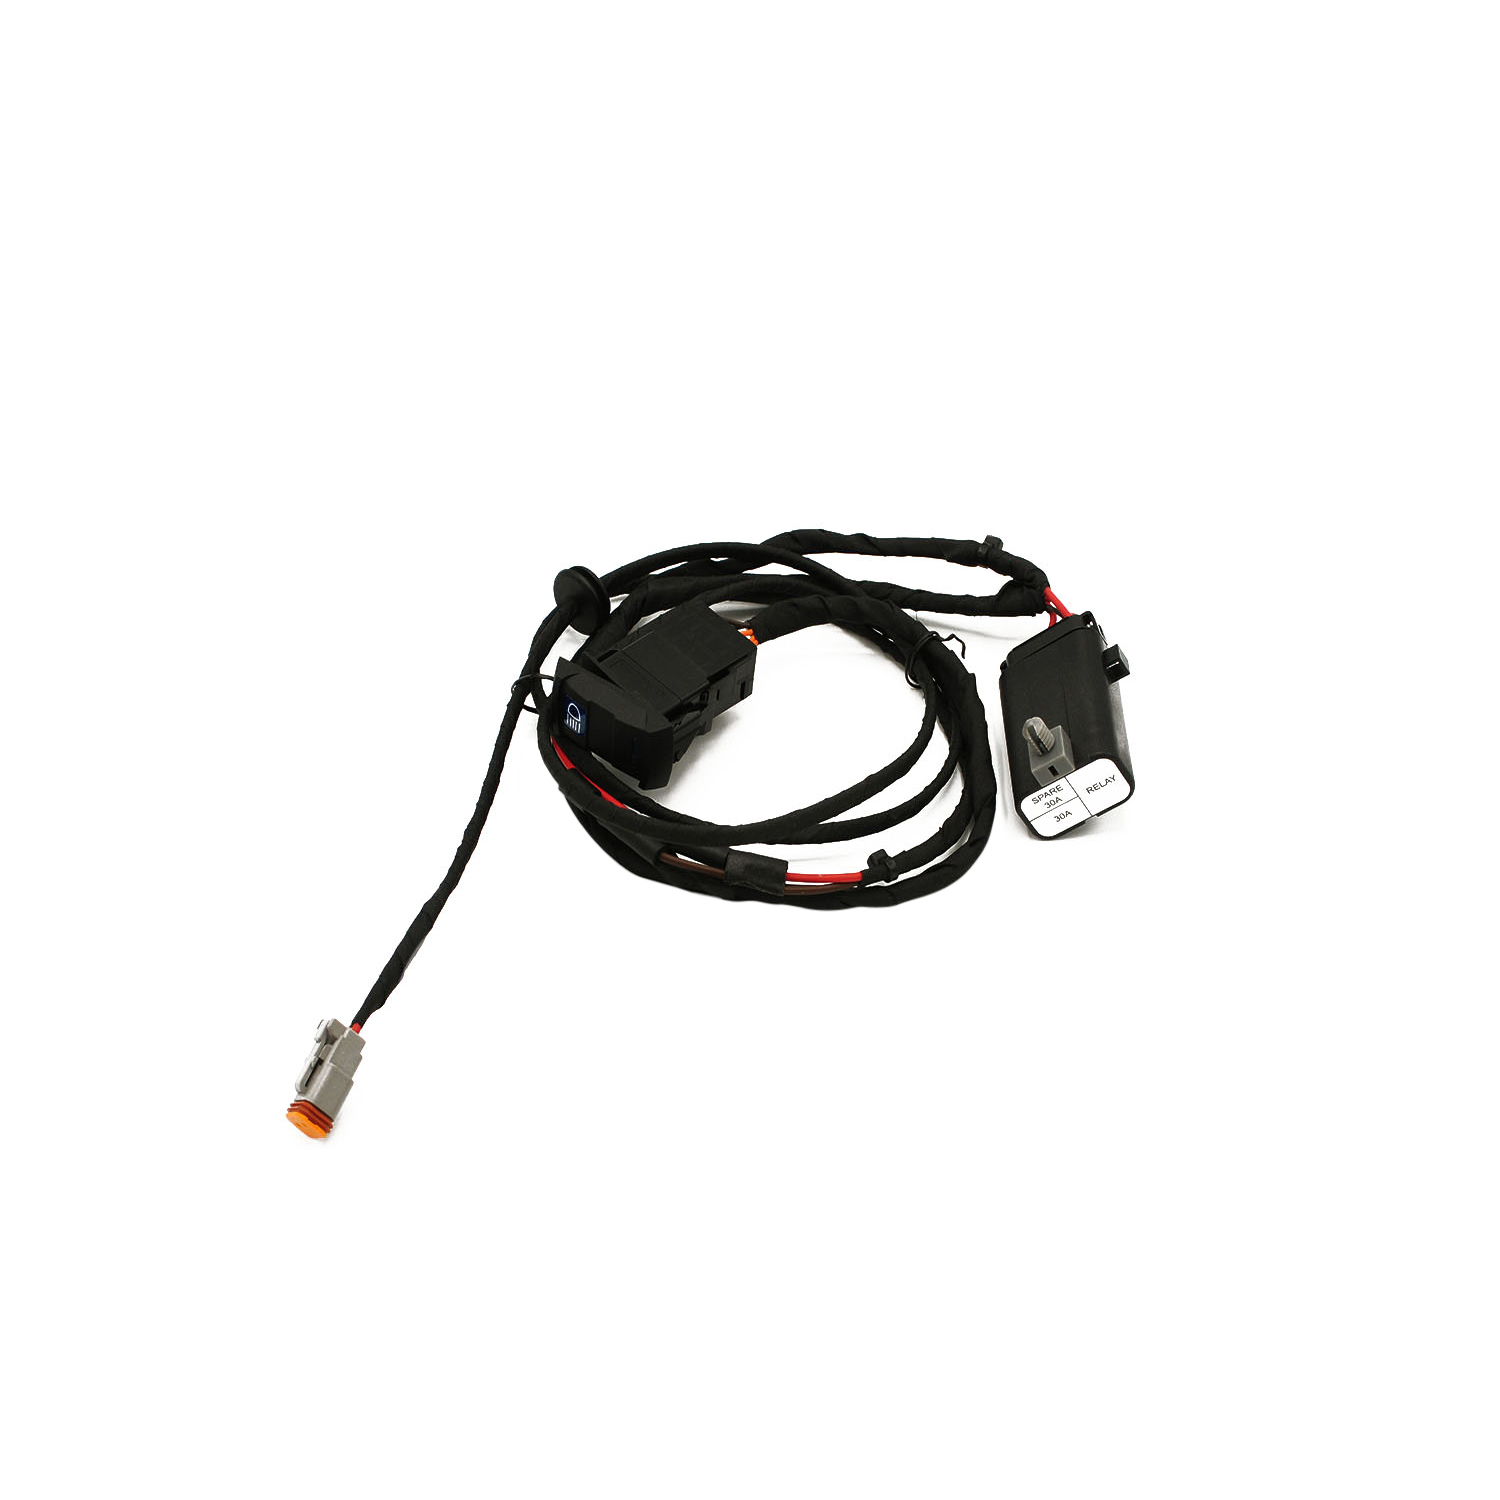 polaris pulse™ wiring harness 1 led light high beam light bar wiring diagram polaris 800 tail light wiring harness